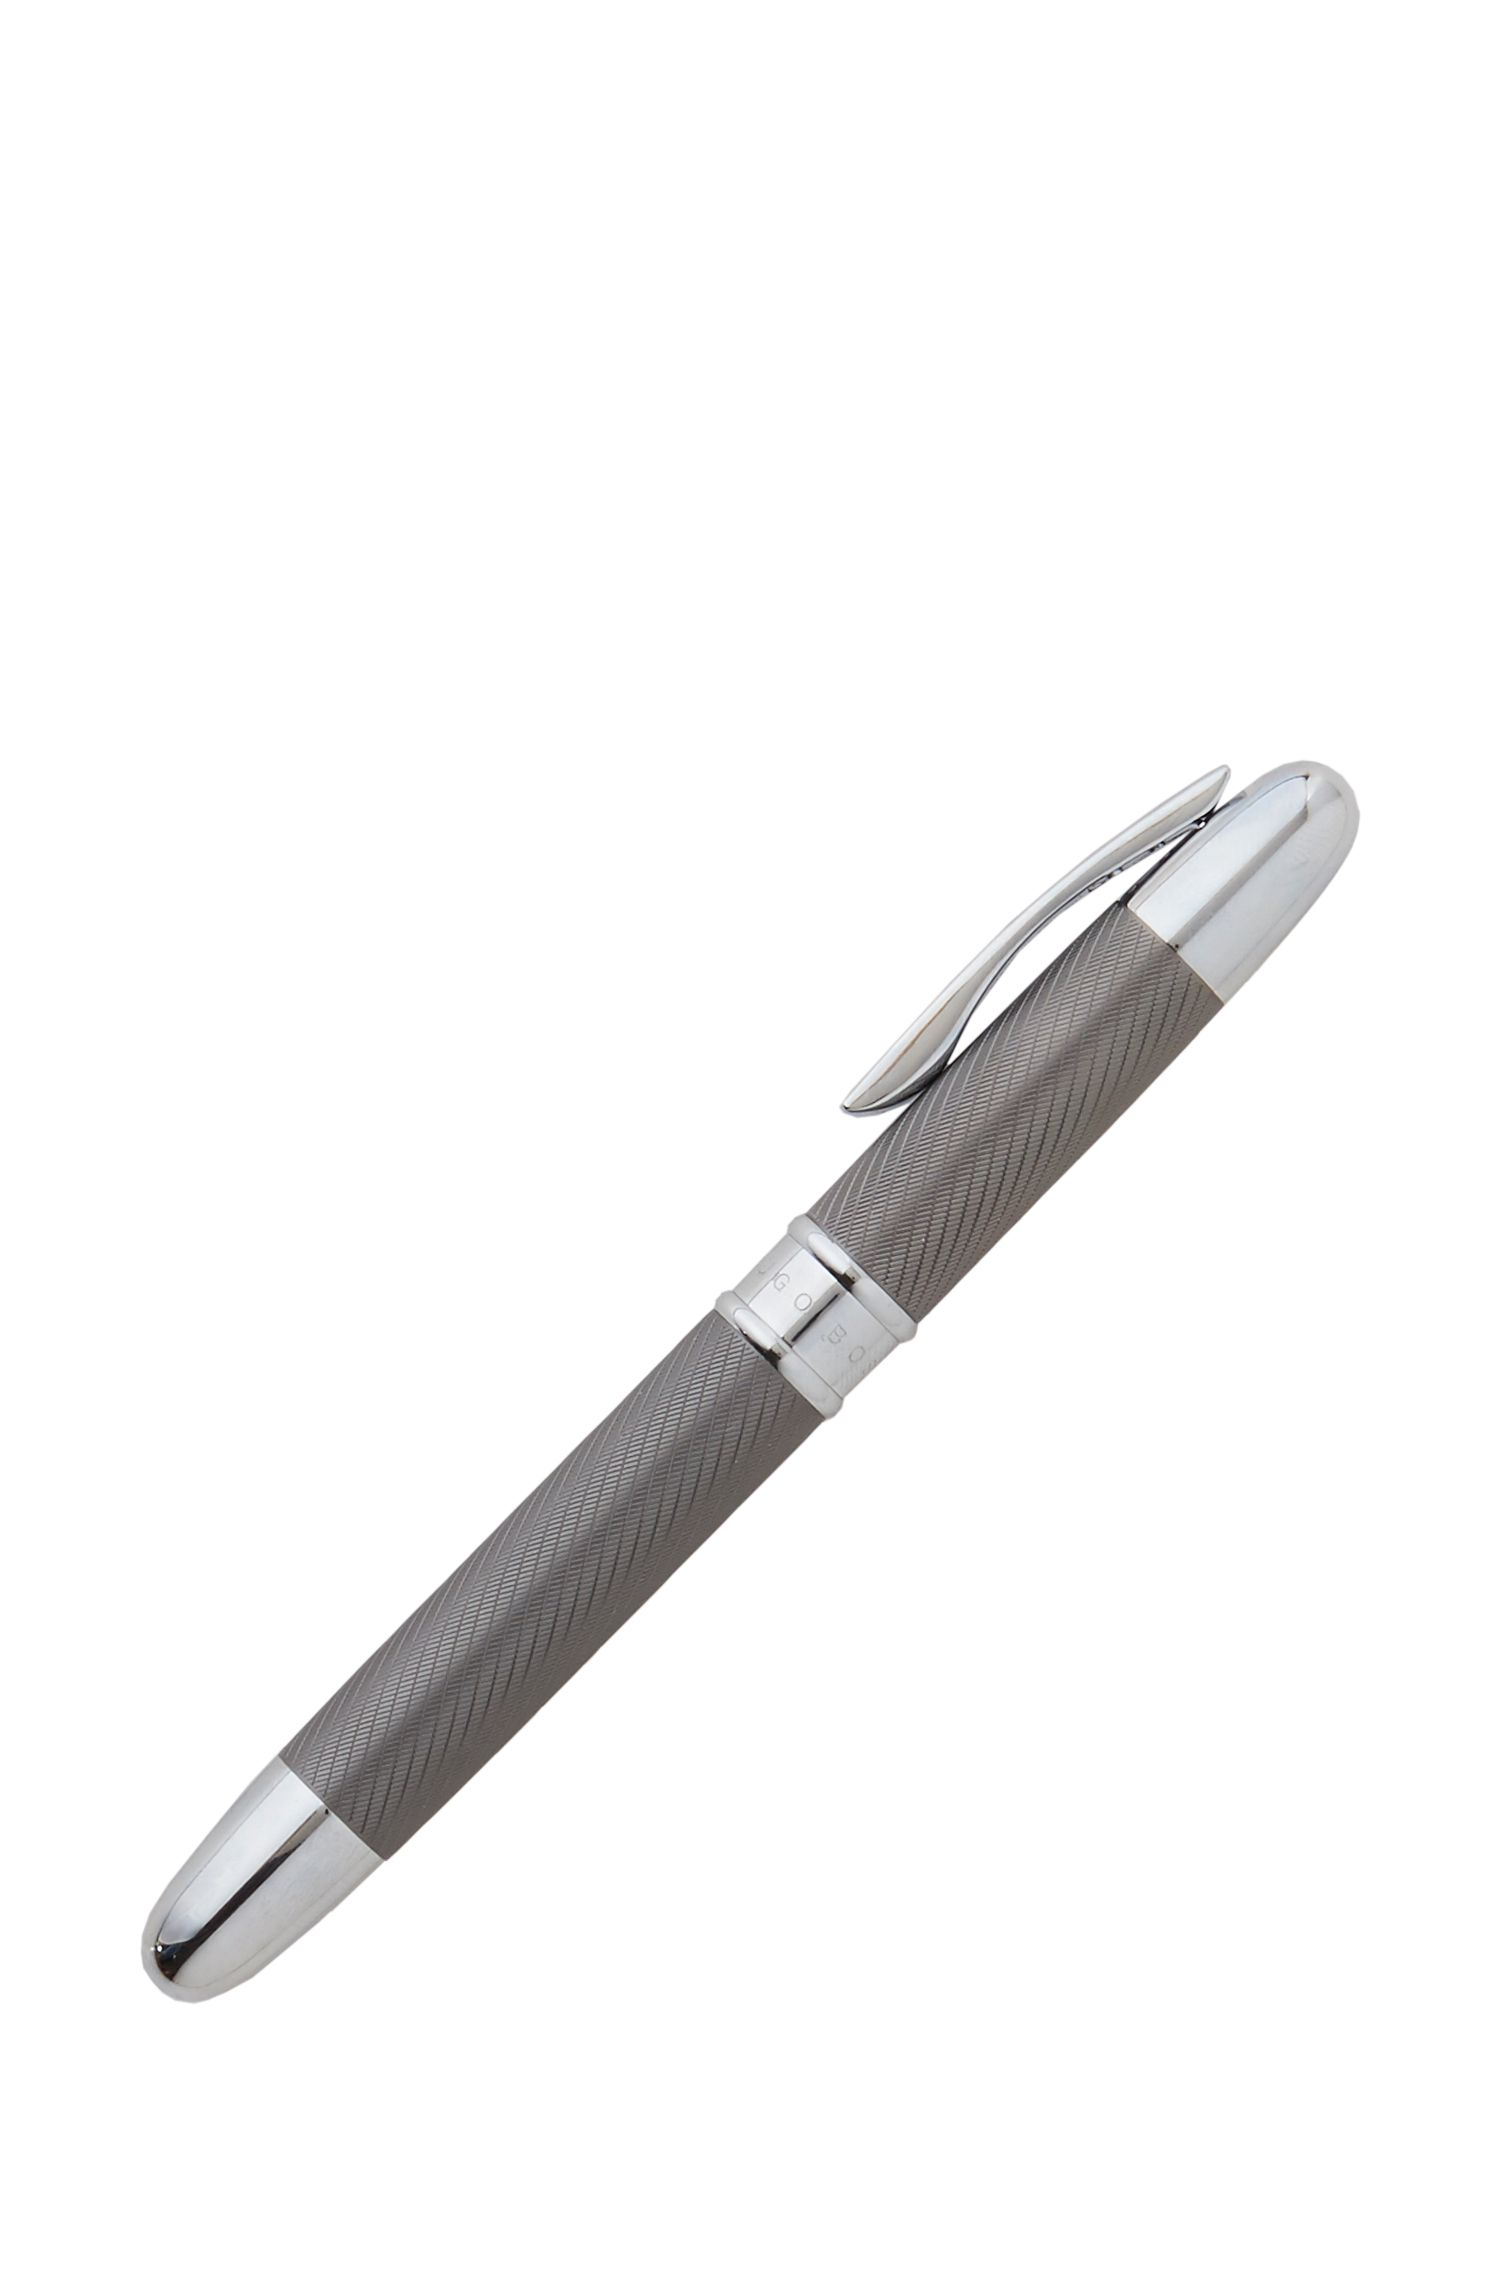 Stripe Matte Dark Chrome Rollerball Pen, Silver